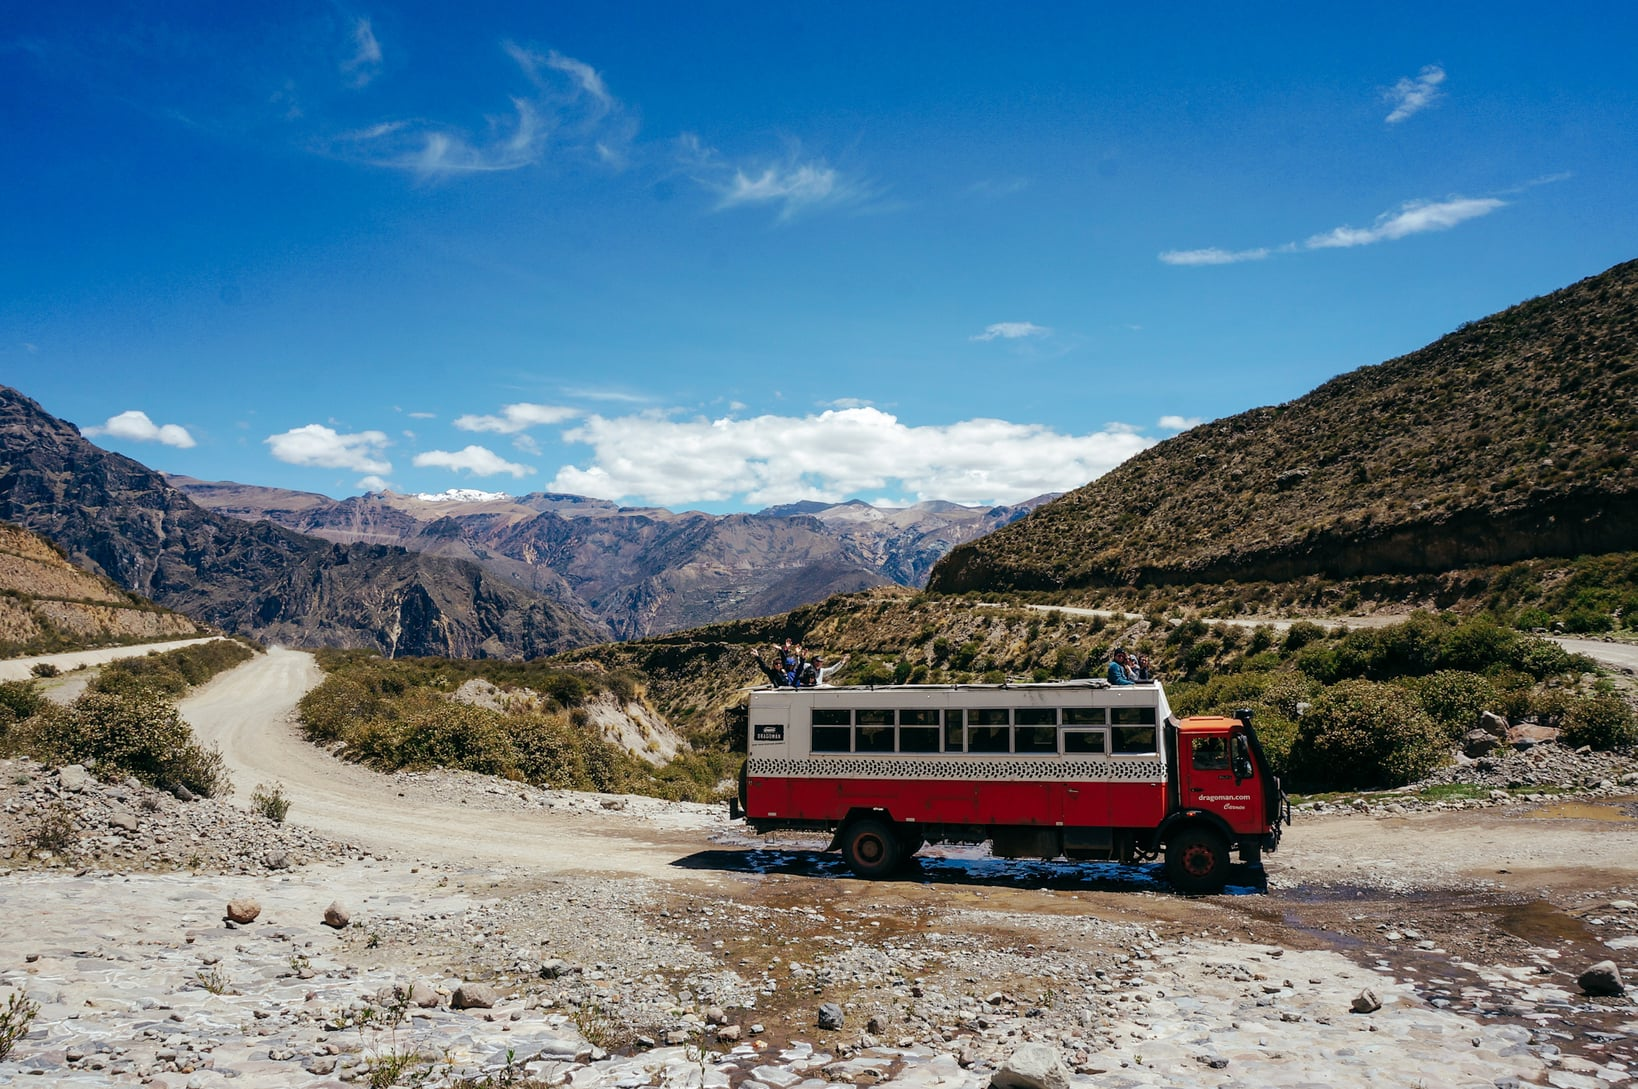 Overland red and white Dragoman Tour bus parked at Colca Canyon, Peru.